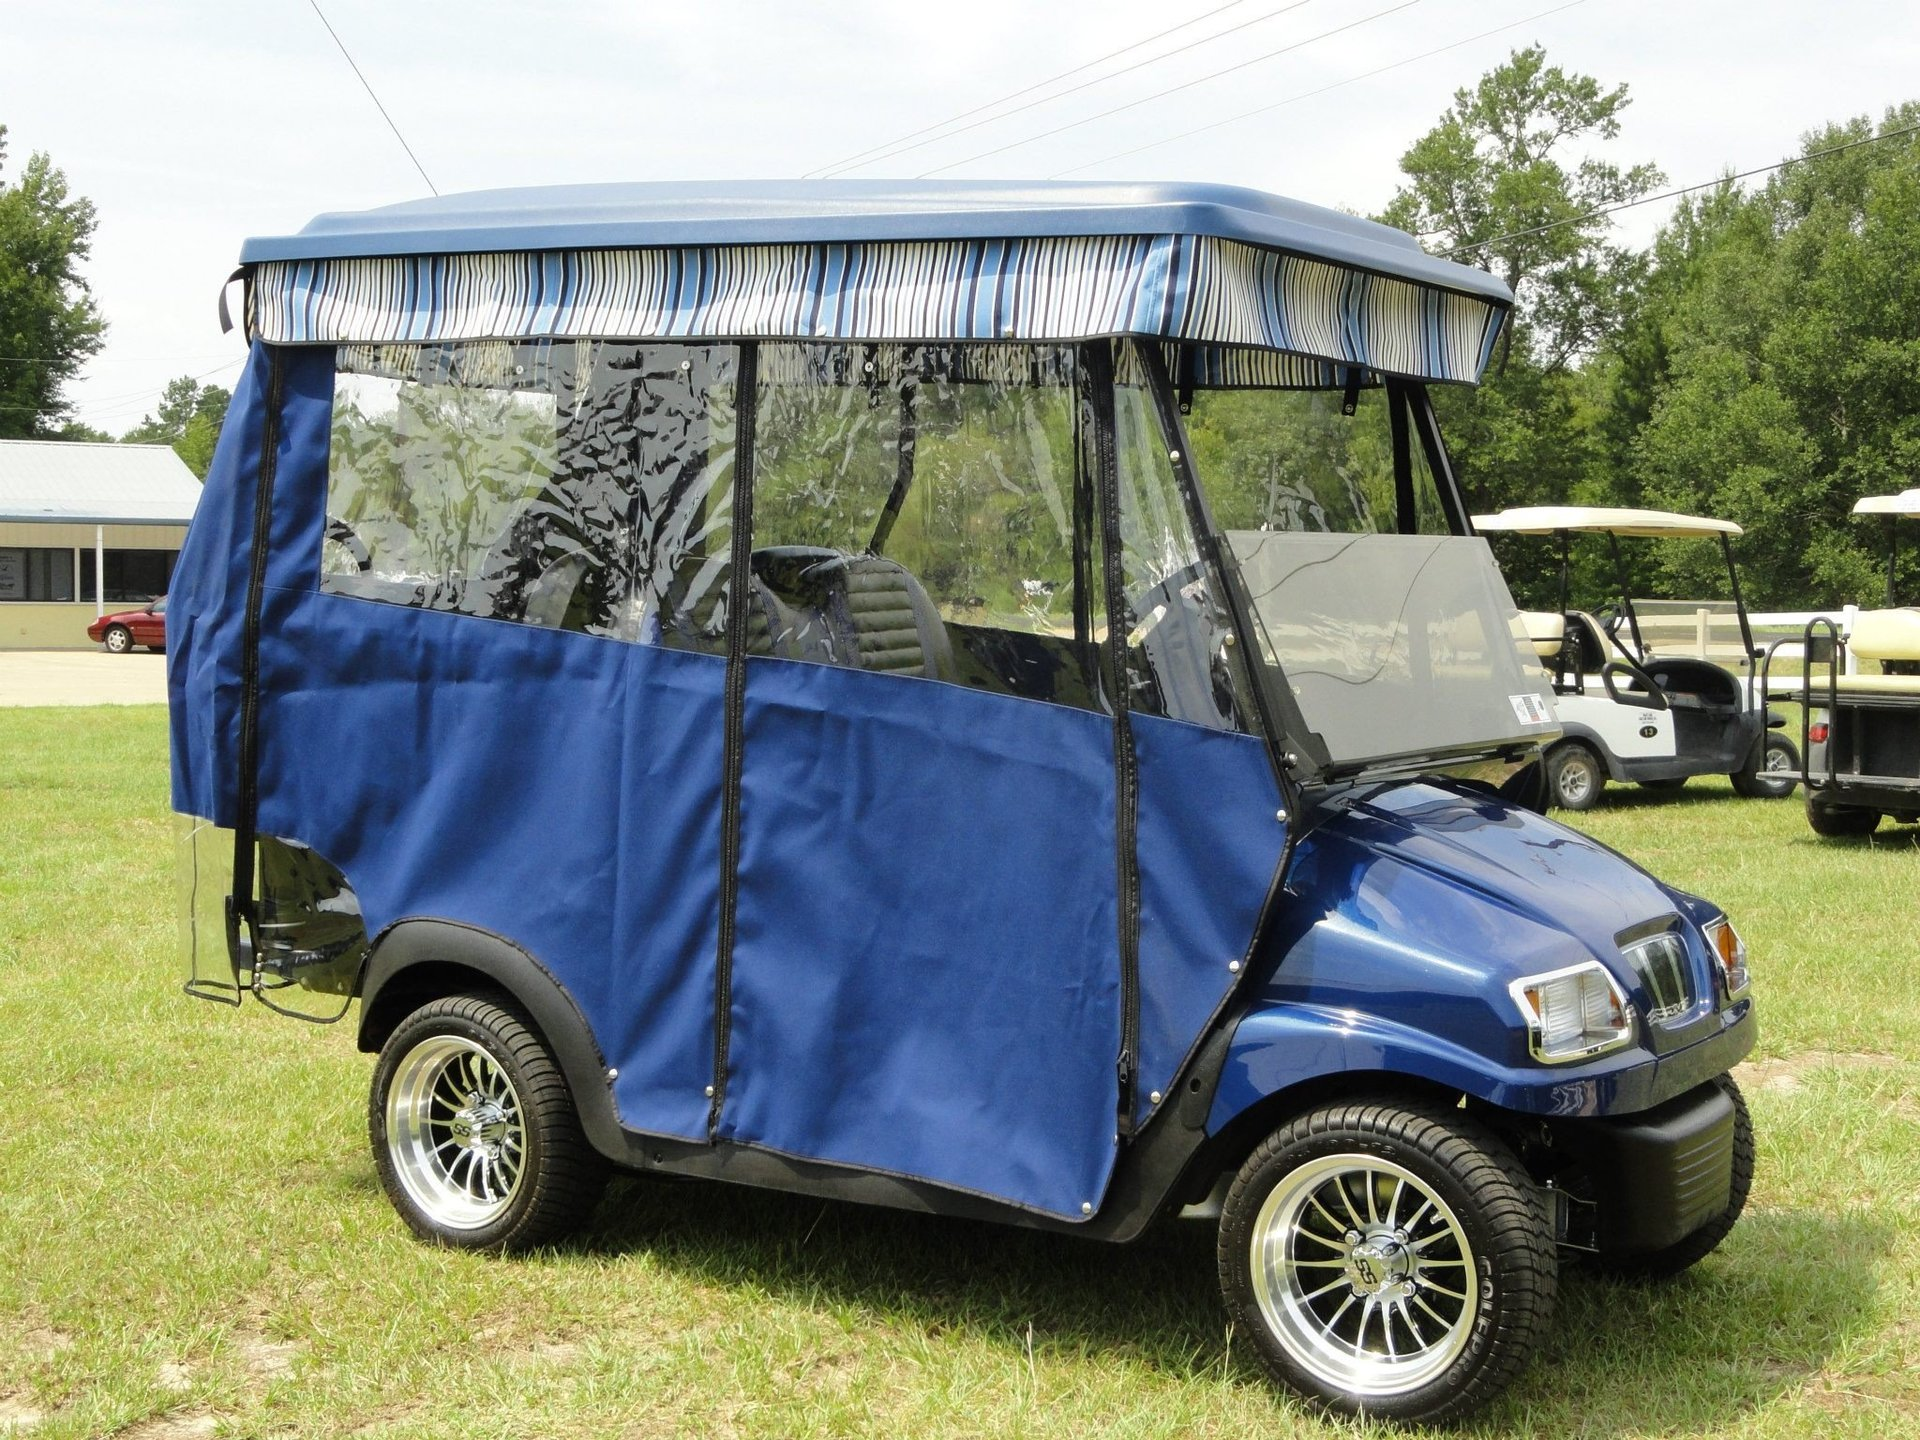 Golf Cart Covers | Golf Cart Enclosures | Hawkins, TX Red Dot Golf Cart Sunbrella Cover on vinyl golf cart covers, national golf cart covers, yamaha golf cart covers, clear plastic golf cart covers, canvas golf cart covers, golf cart cloth seat covers, sam's club golf cart covers, discount golf cart covers, custom golf cart covers, club car golf cart rain covers, 3 sided golf cart covers, star golf cart covers, rail golf cart covers, golf cart canopy covers, buggies unlimited golf cart covers, door works golf cart covers, classic golf cart covers, eevelle golf cart covers, harley golf cart seat covers, portable golf cart covers,